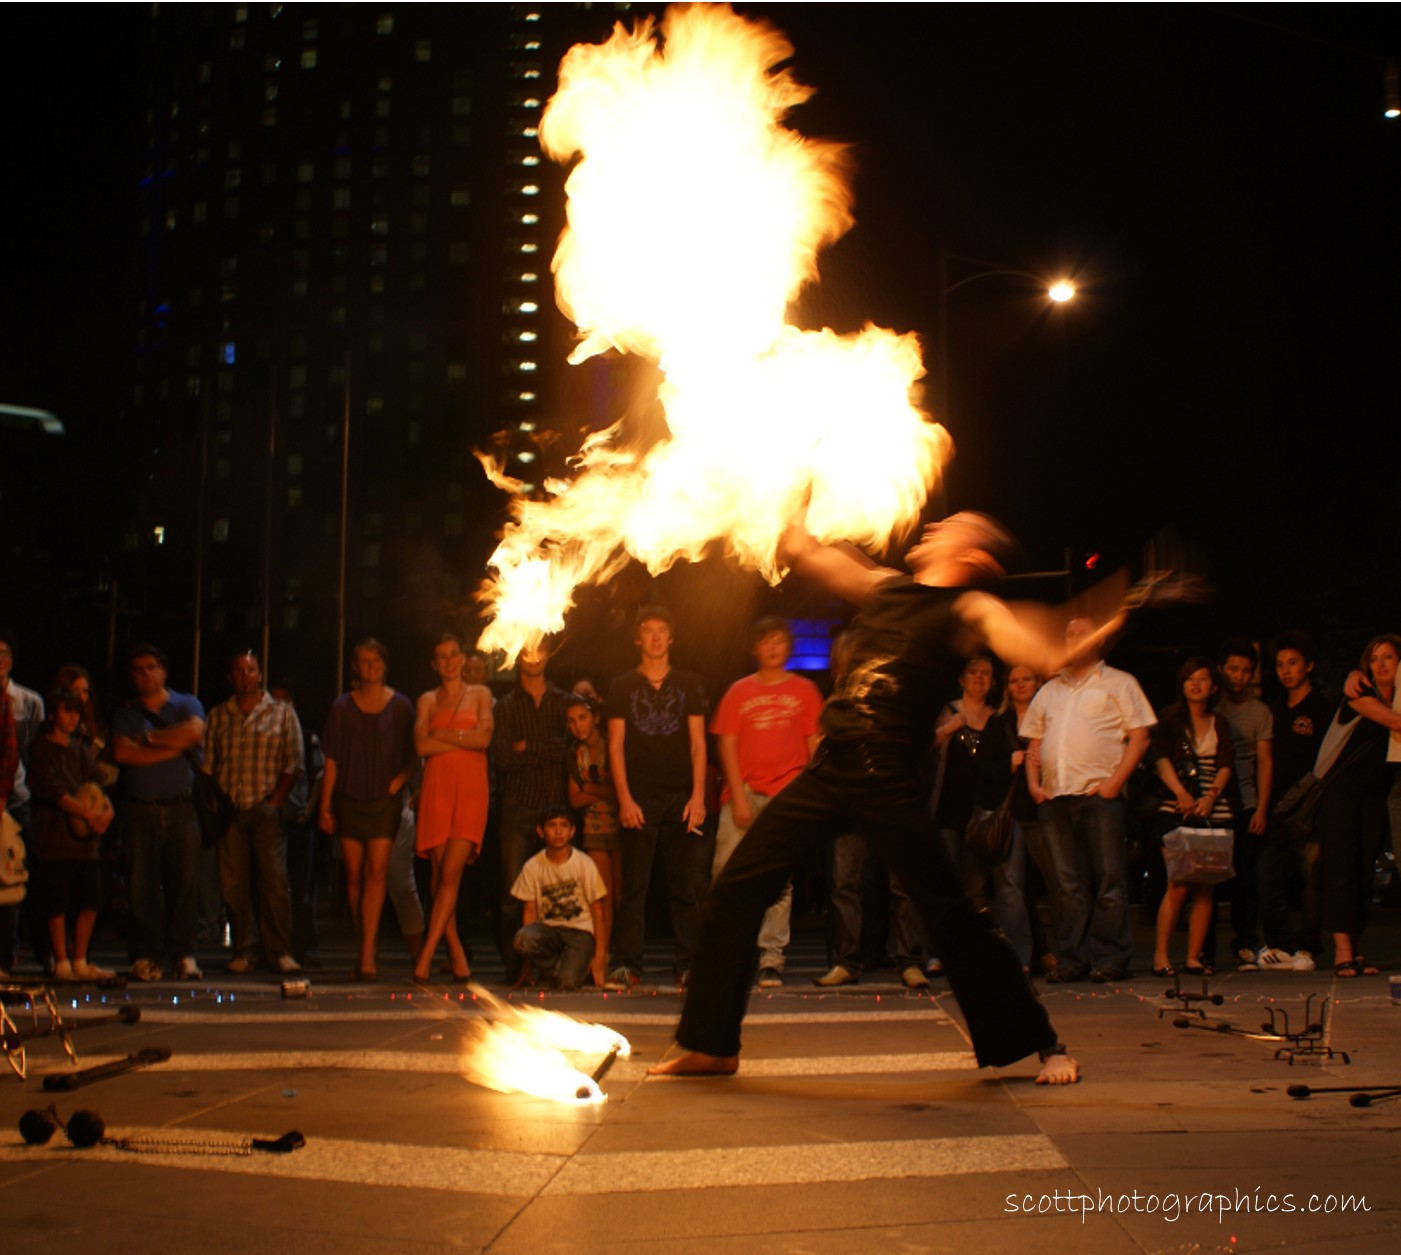 http://www.images.scottphotographics.com/shot-of-the-day/%2318/fire-twirler-southbank-promenade-melbourne-4.jpg